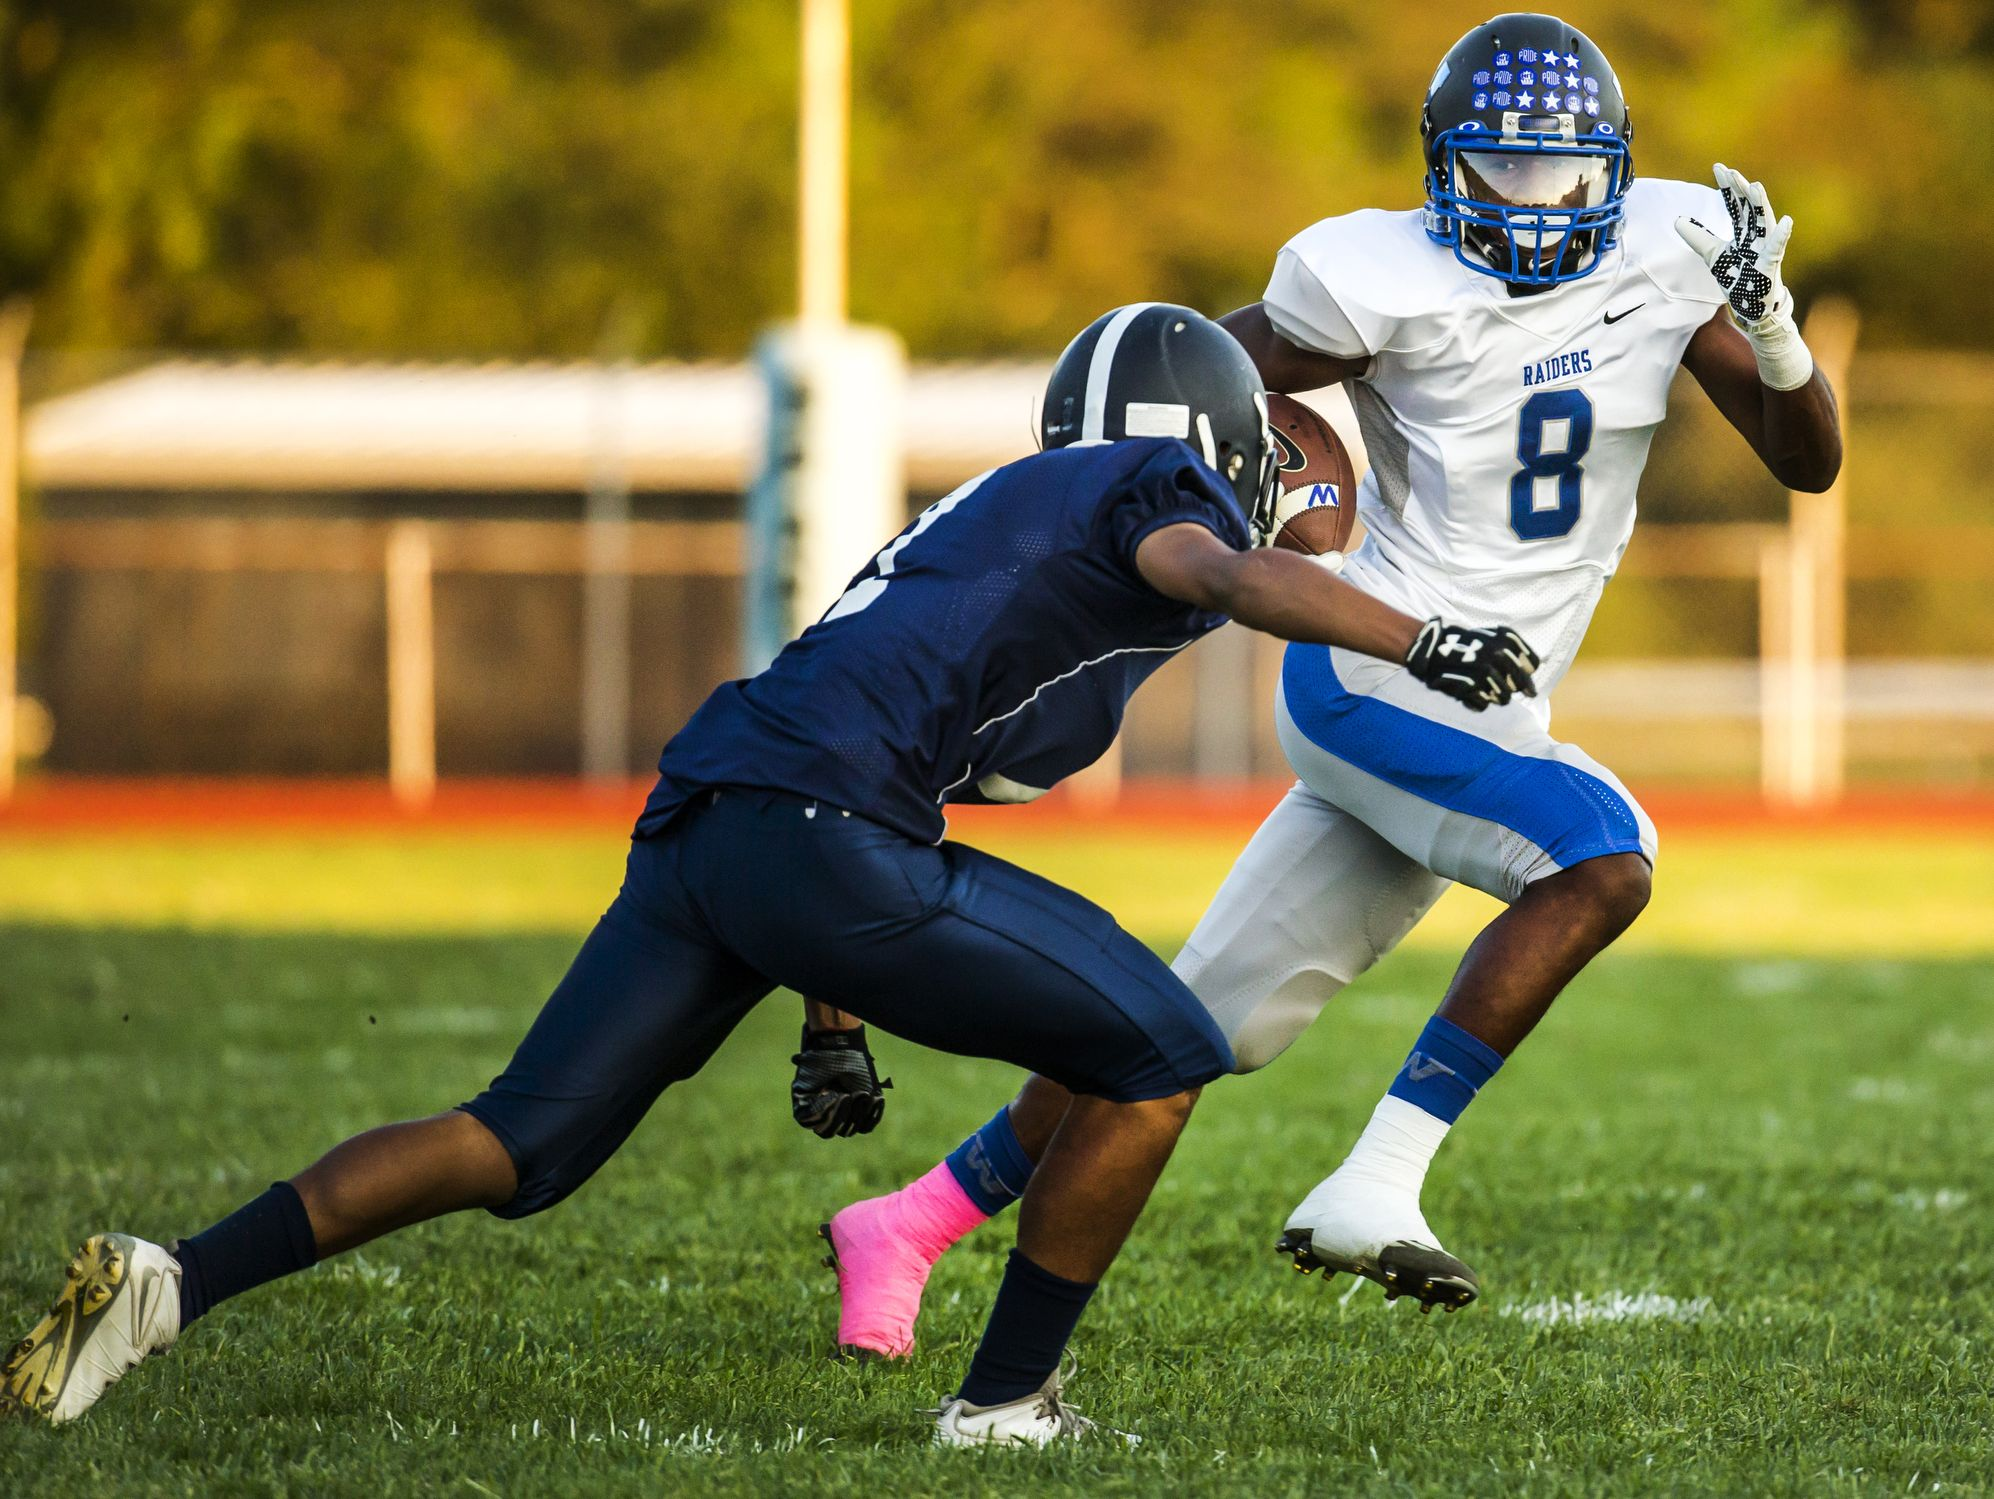 Woodbridge's Jamon Kane (No. 8) tries to shake Lake Forest's Jaysem Vazquez in the first quarter of Woodbridge's 32-0 win over Lake Forest at Lake Forest High School in Felton on Monday evening.